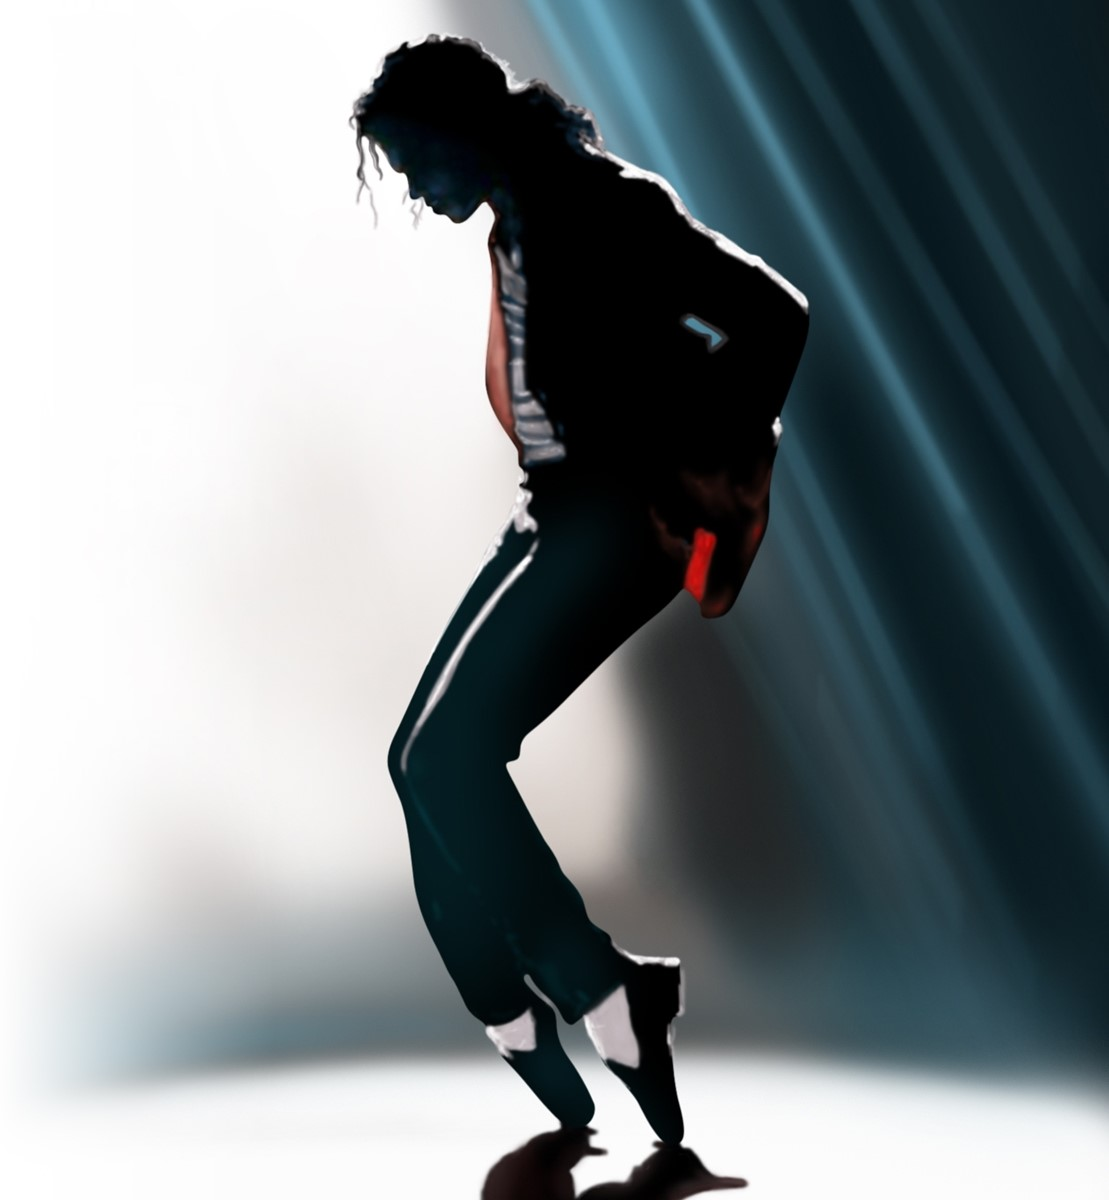 Michael Jackson   People Famous For Things They Didn't Do   Brain Berries